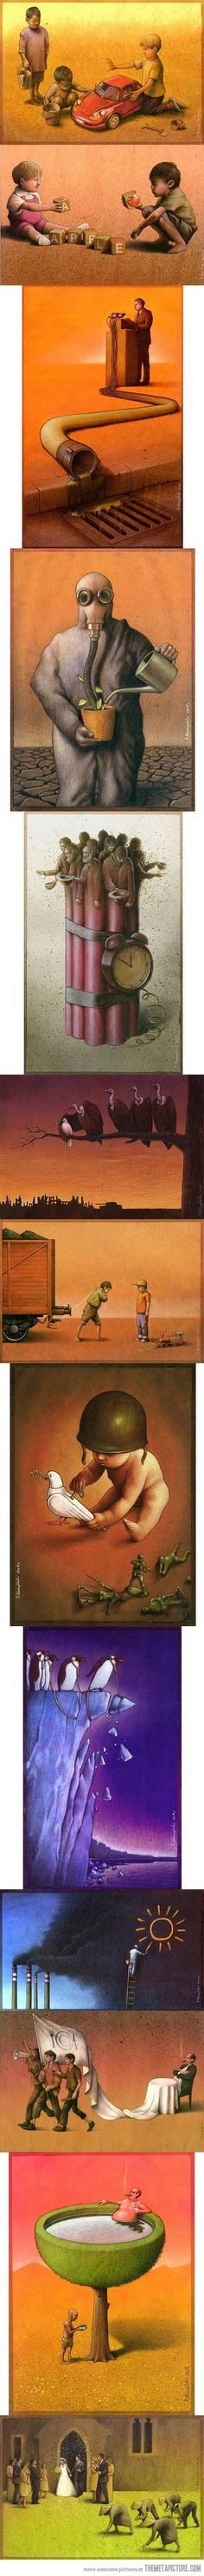 Pictures that make you think